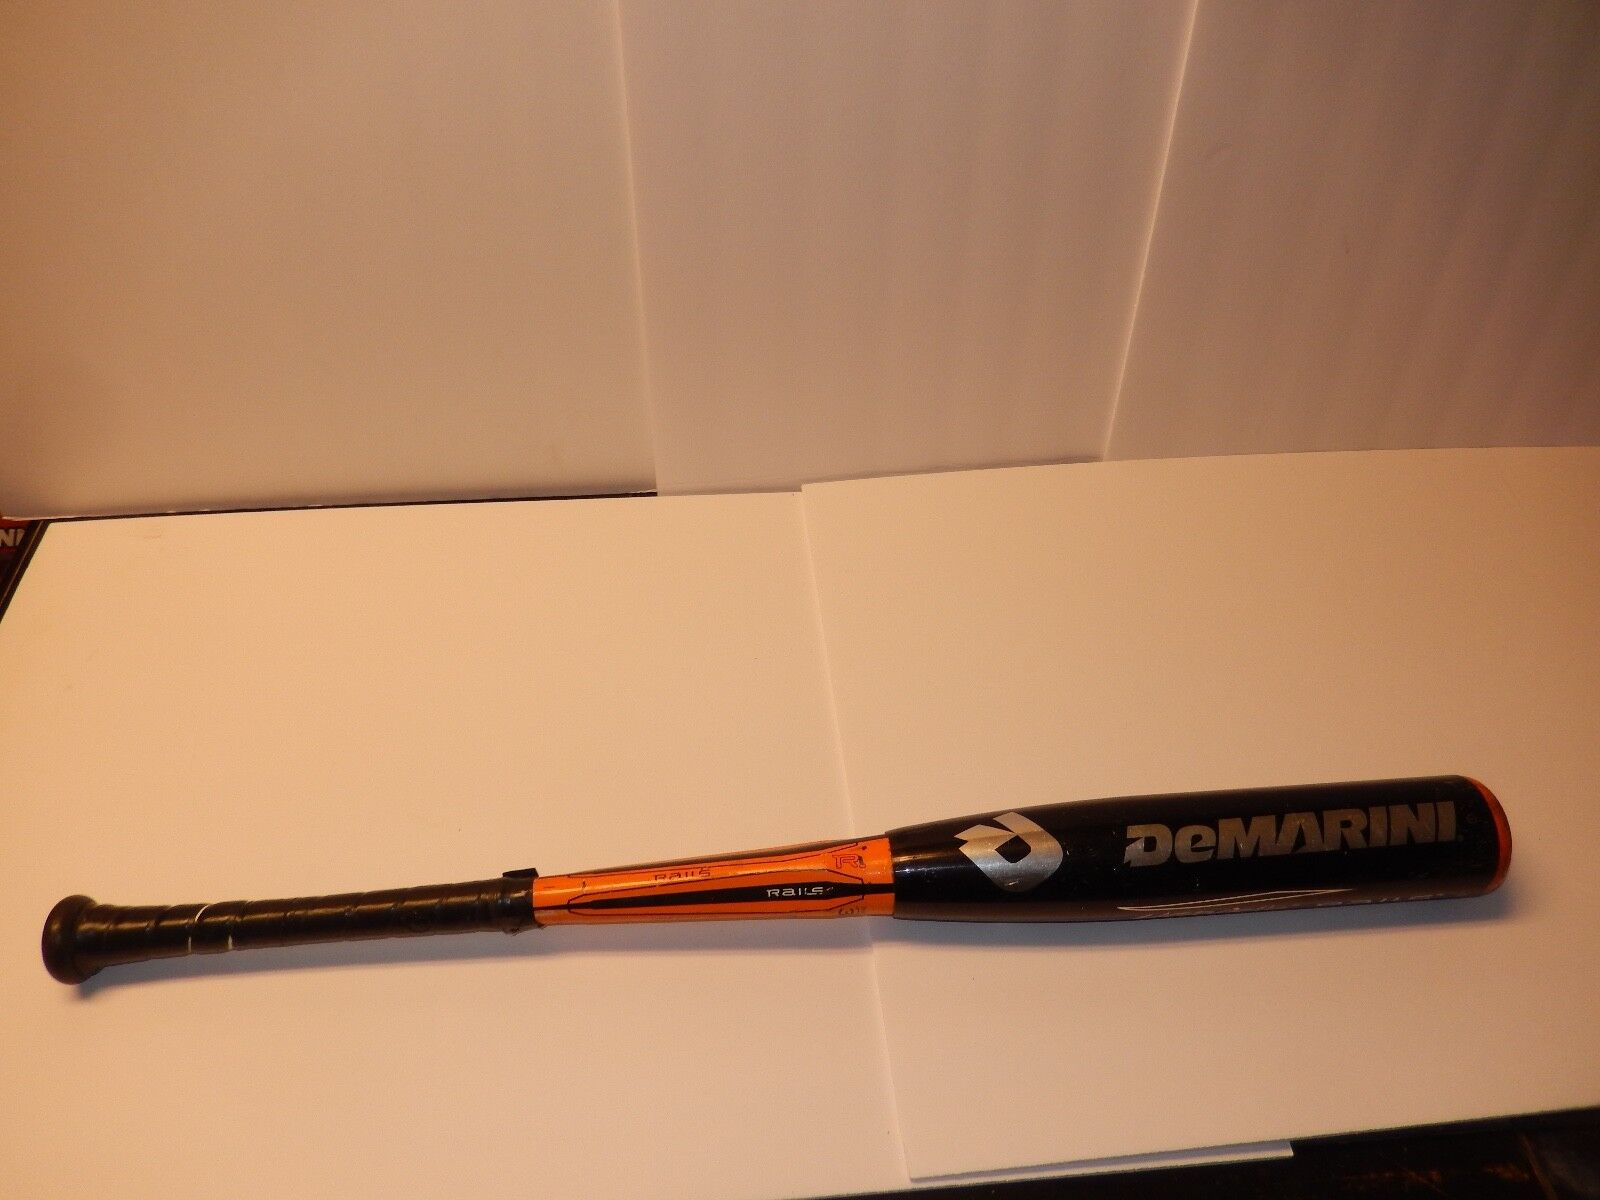 DeMarini Vendetta Rails SC4 Baseball Bat 31in. 28oz. Half+Half (-3) 31 28